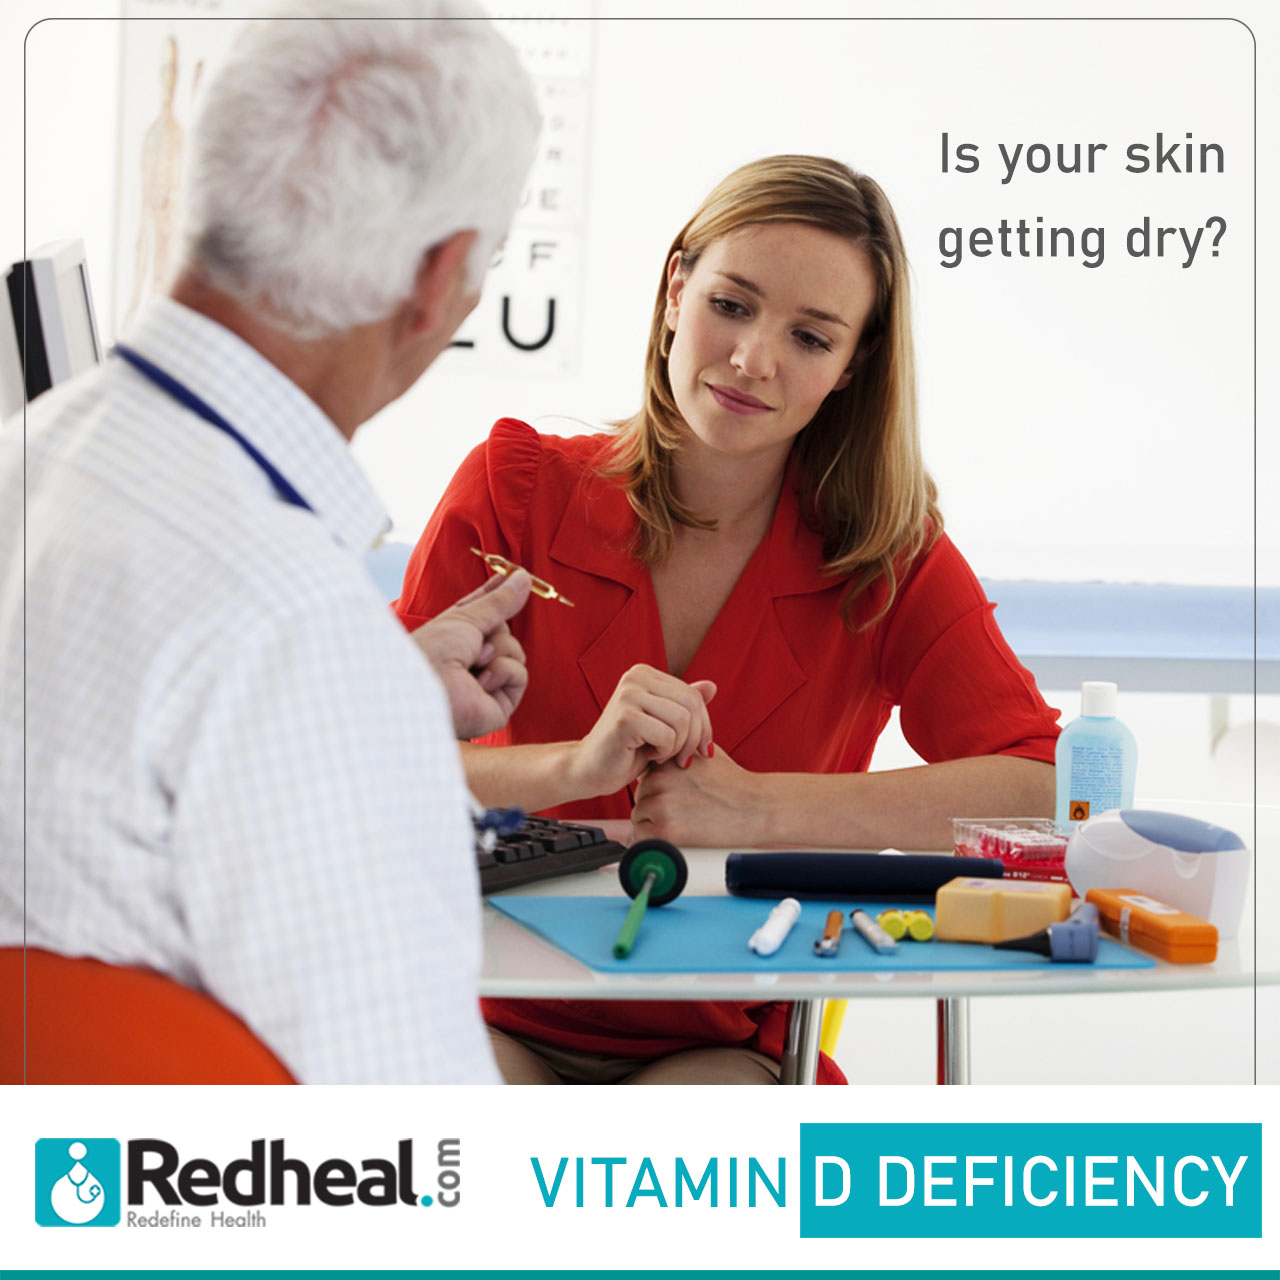 vitamind_deficiency